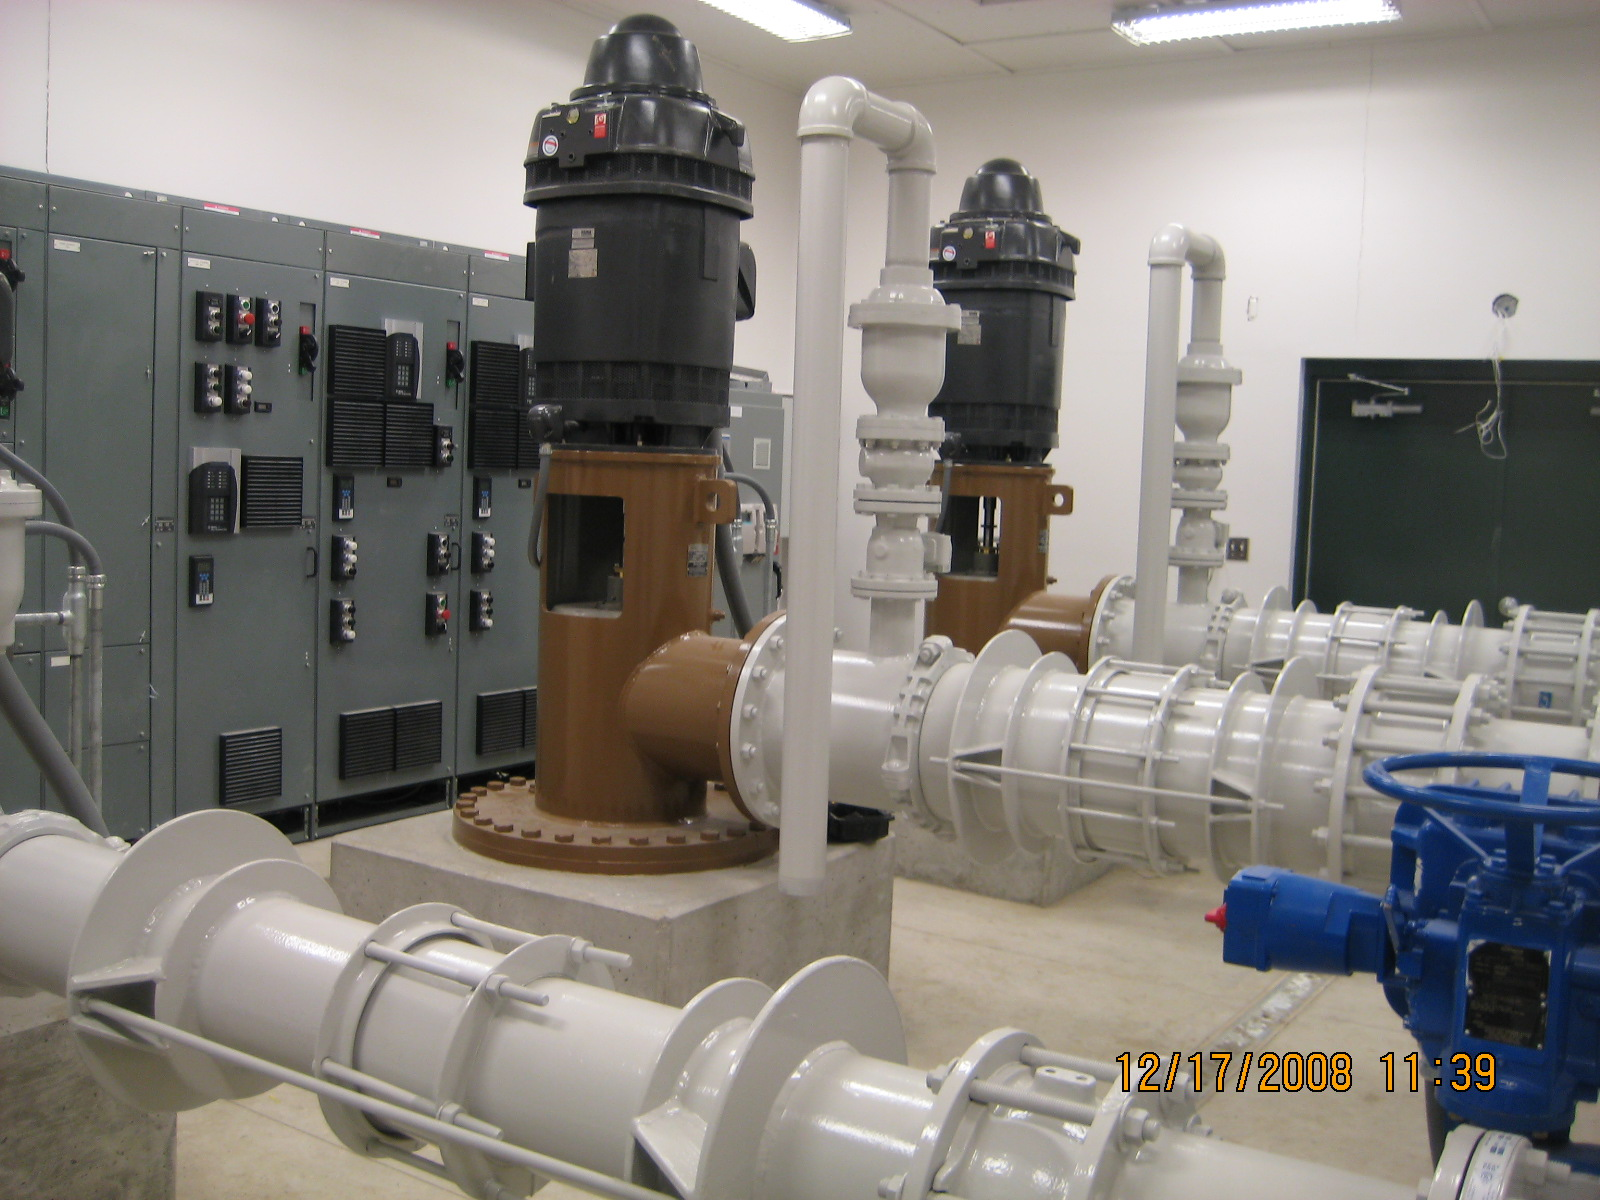 Rockport Booster Pump Station - used to feed water to the Lost Canyon Booster Pumping Facility.